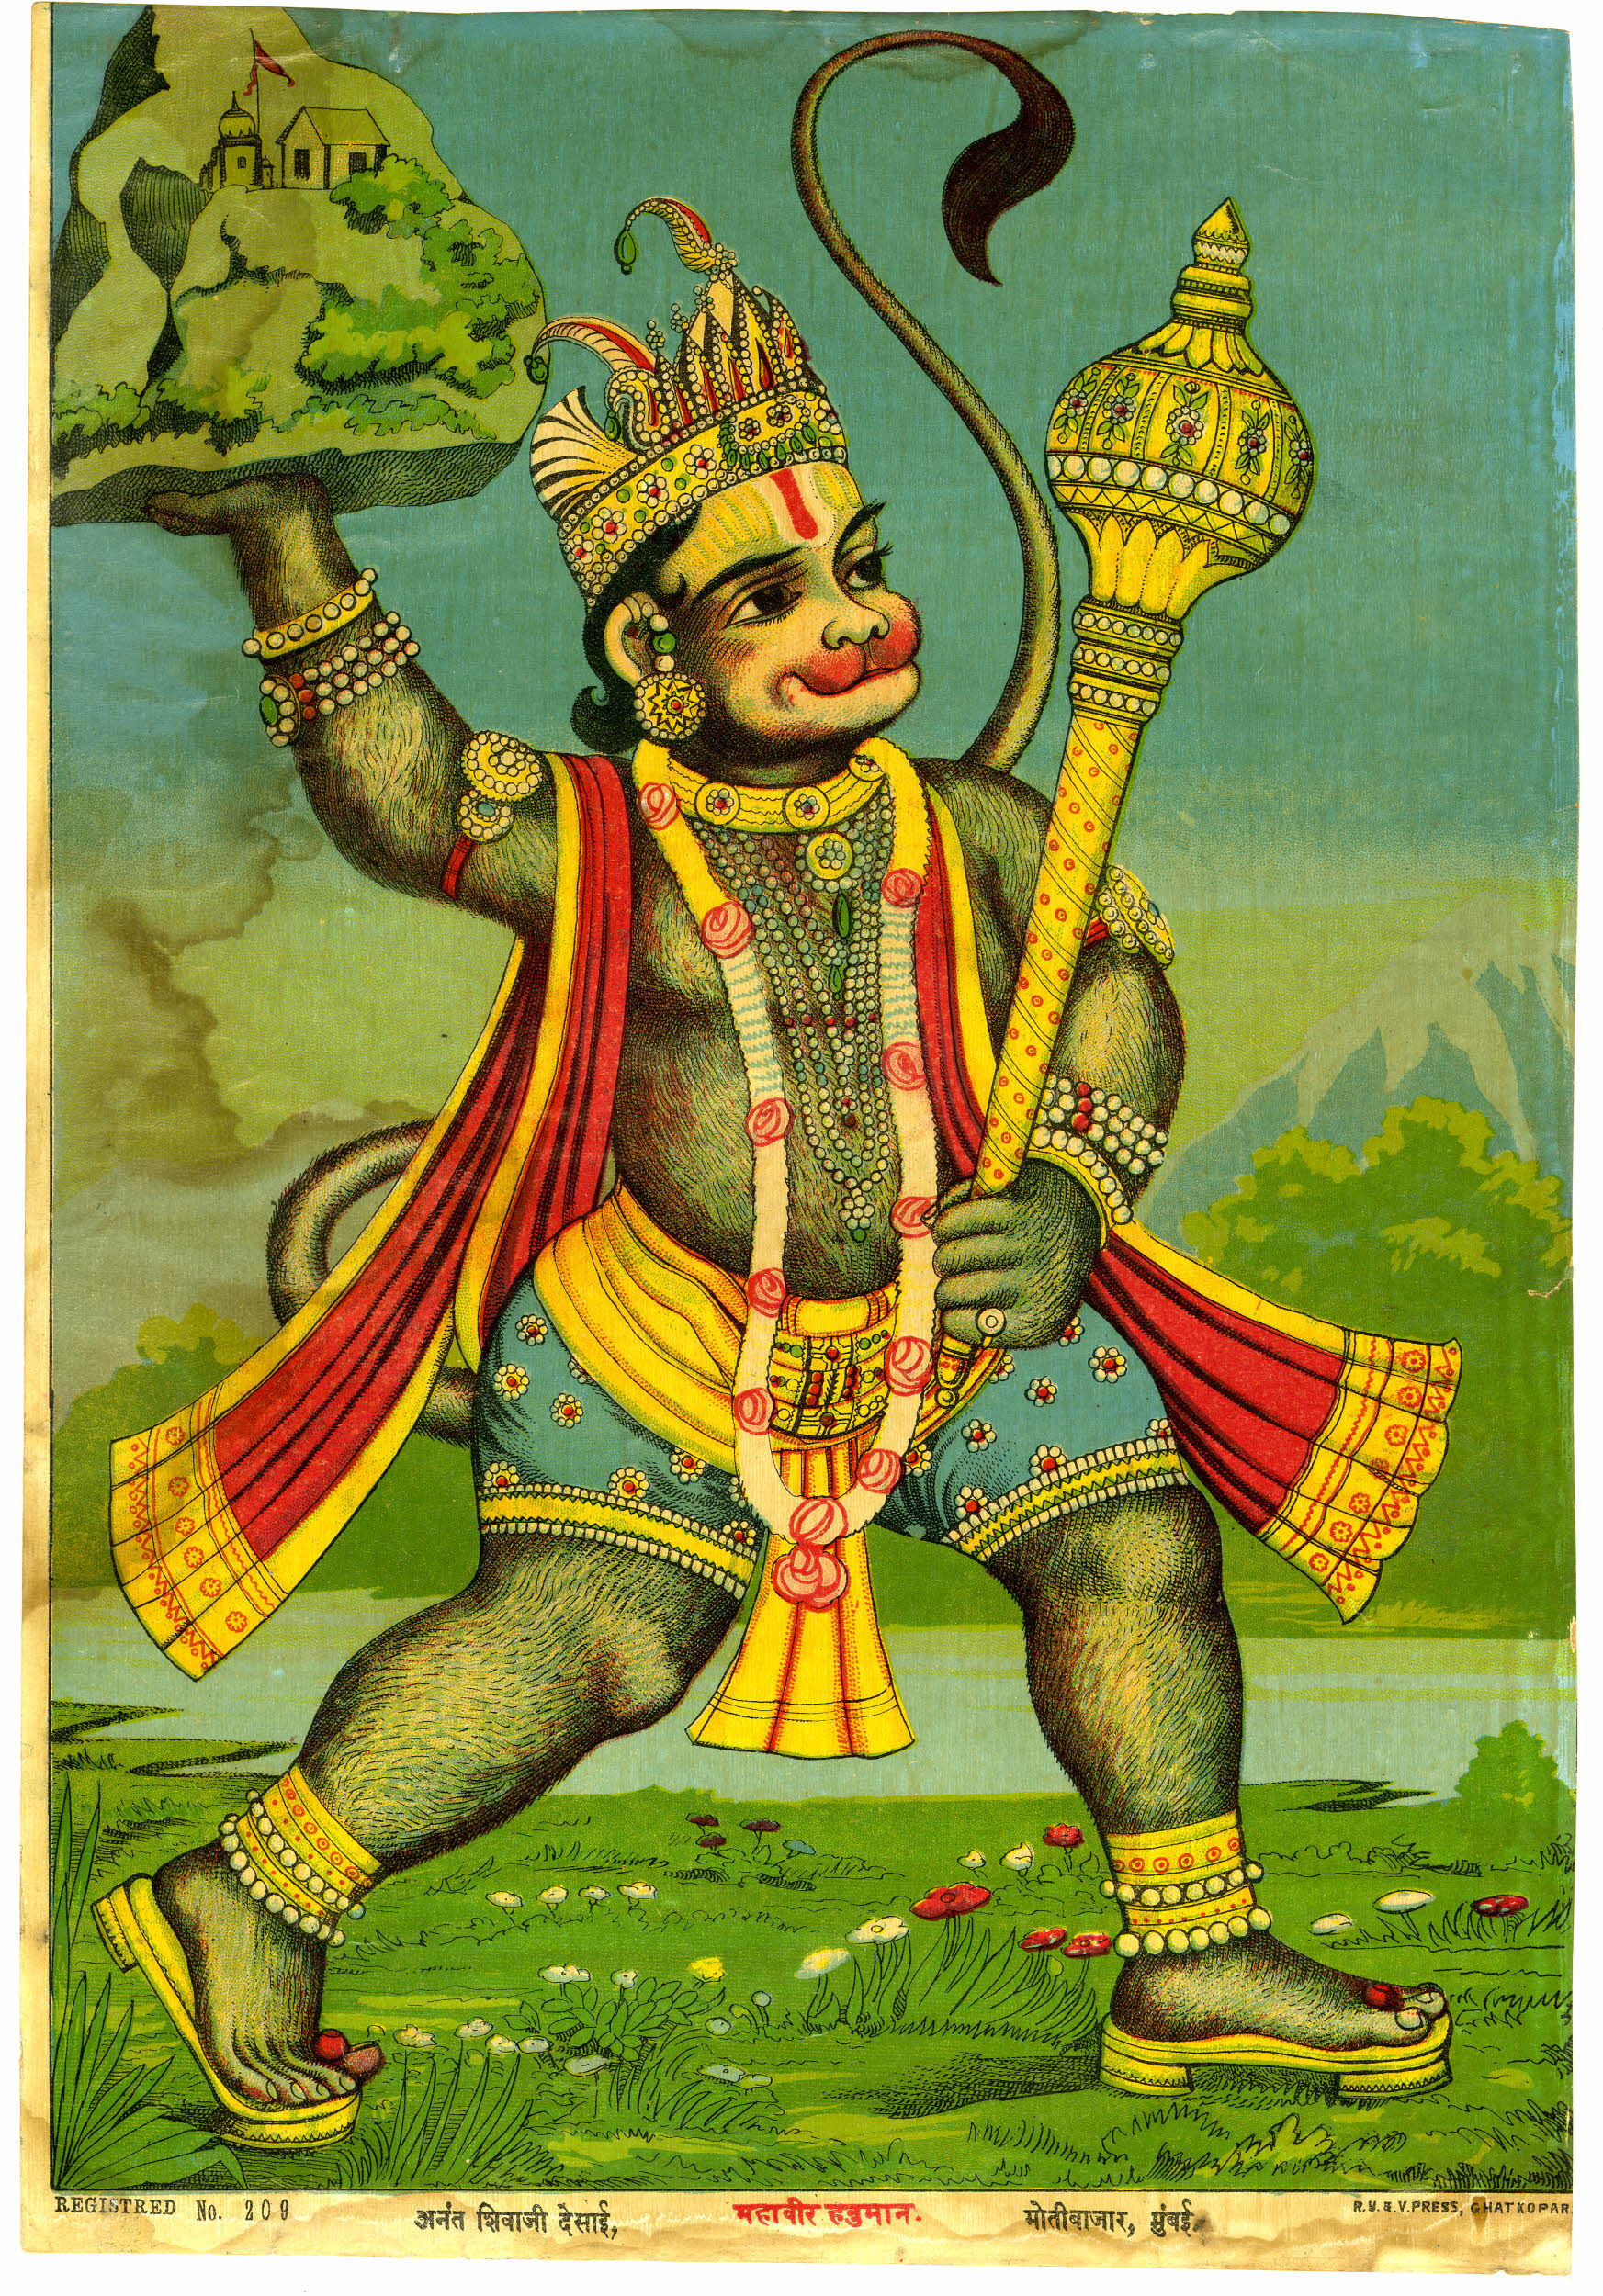 Striding Hanuman Carrying a Mace in his Left hand and the Gandhamadan Mountain of Herbs in his Right Hand - Colour Lithograph, Early 20th Century